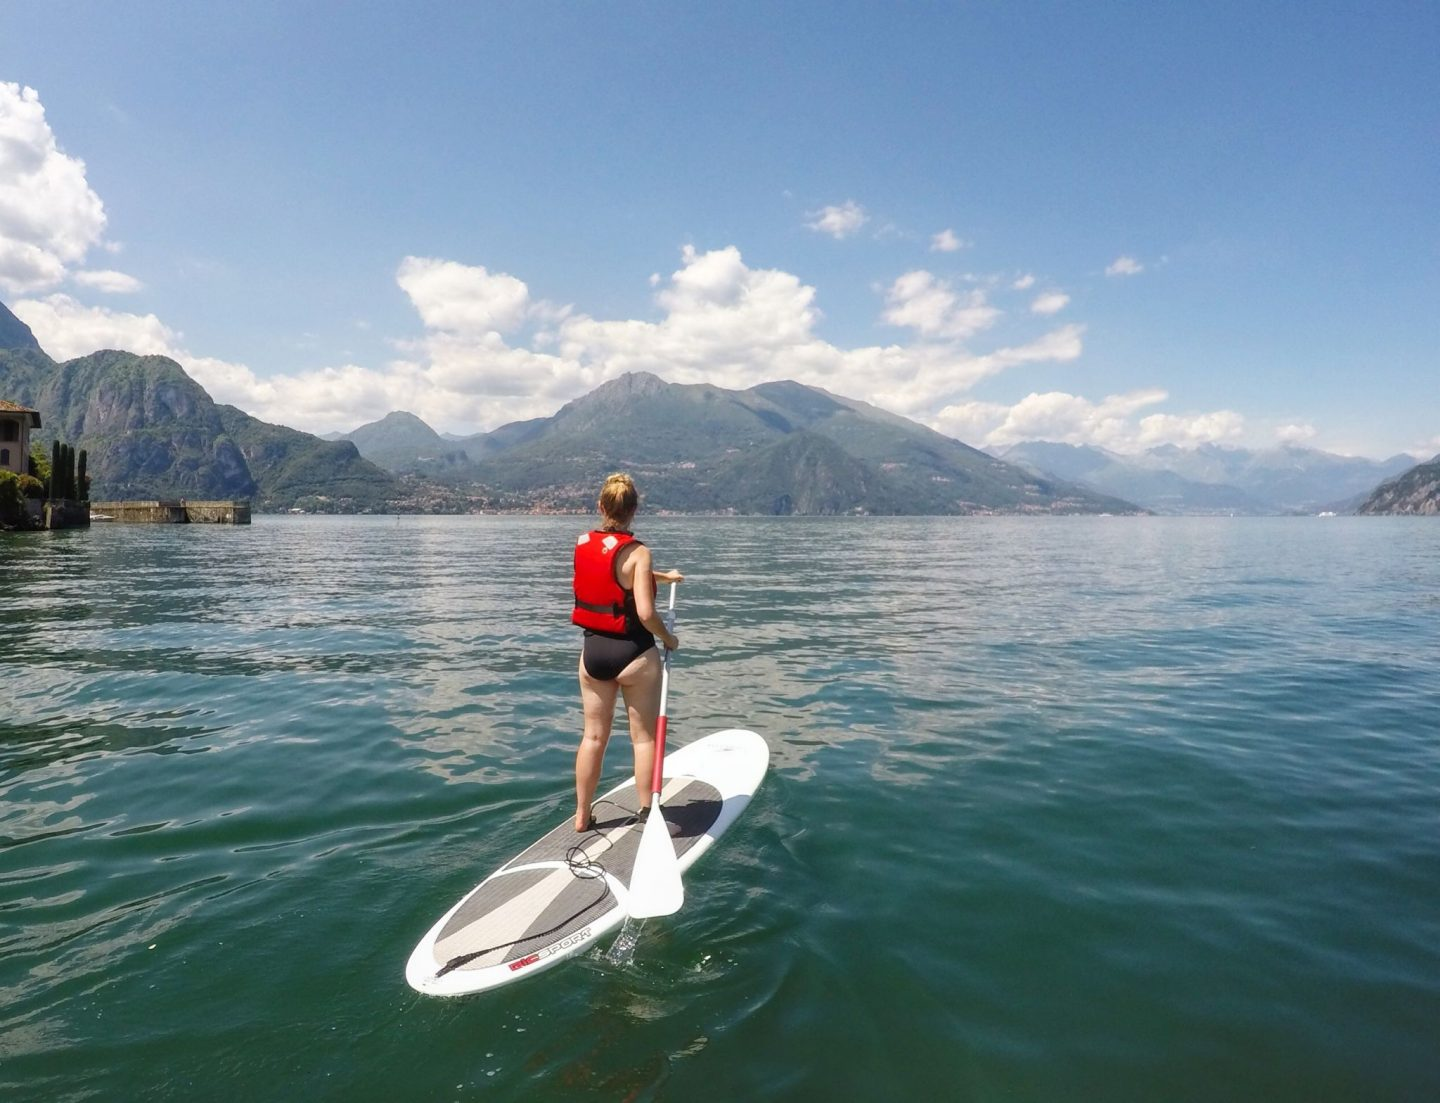 Paddle boarding in Bellagio